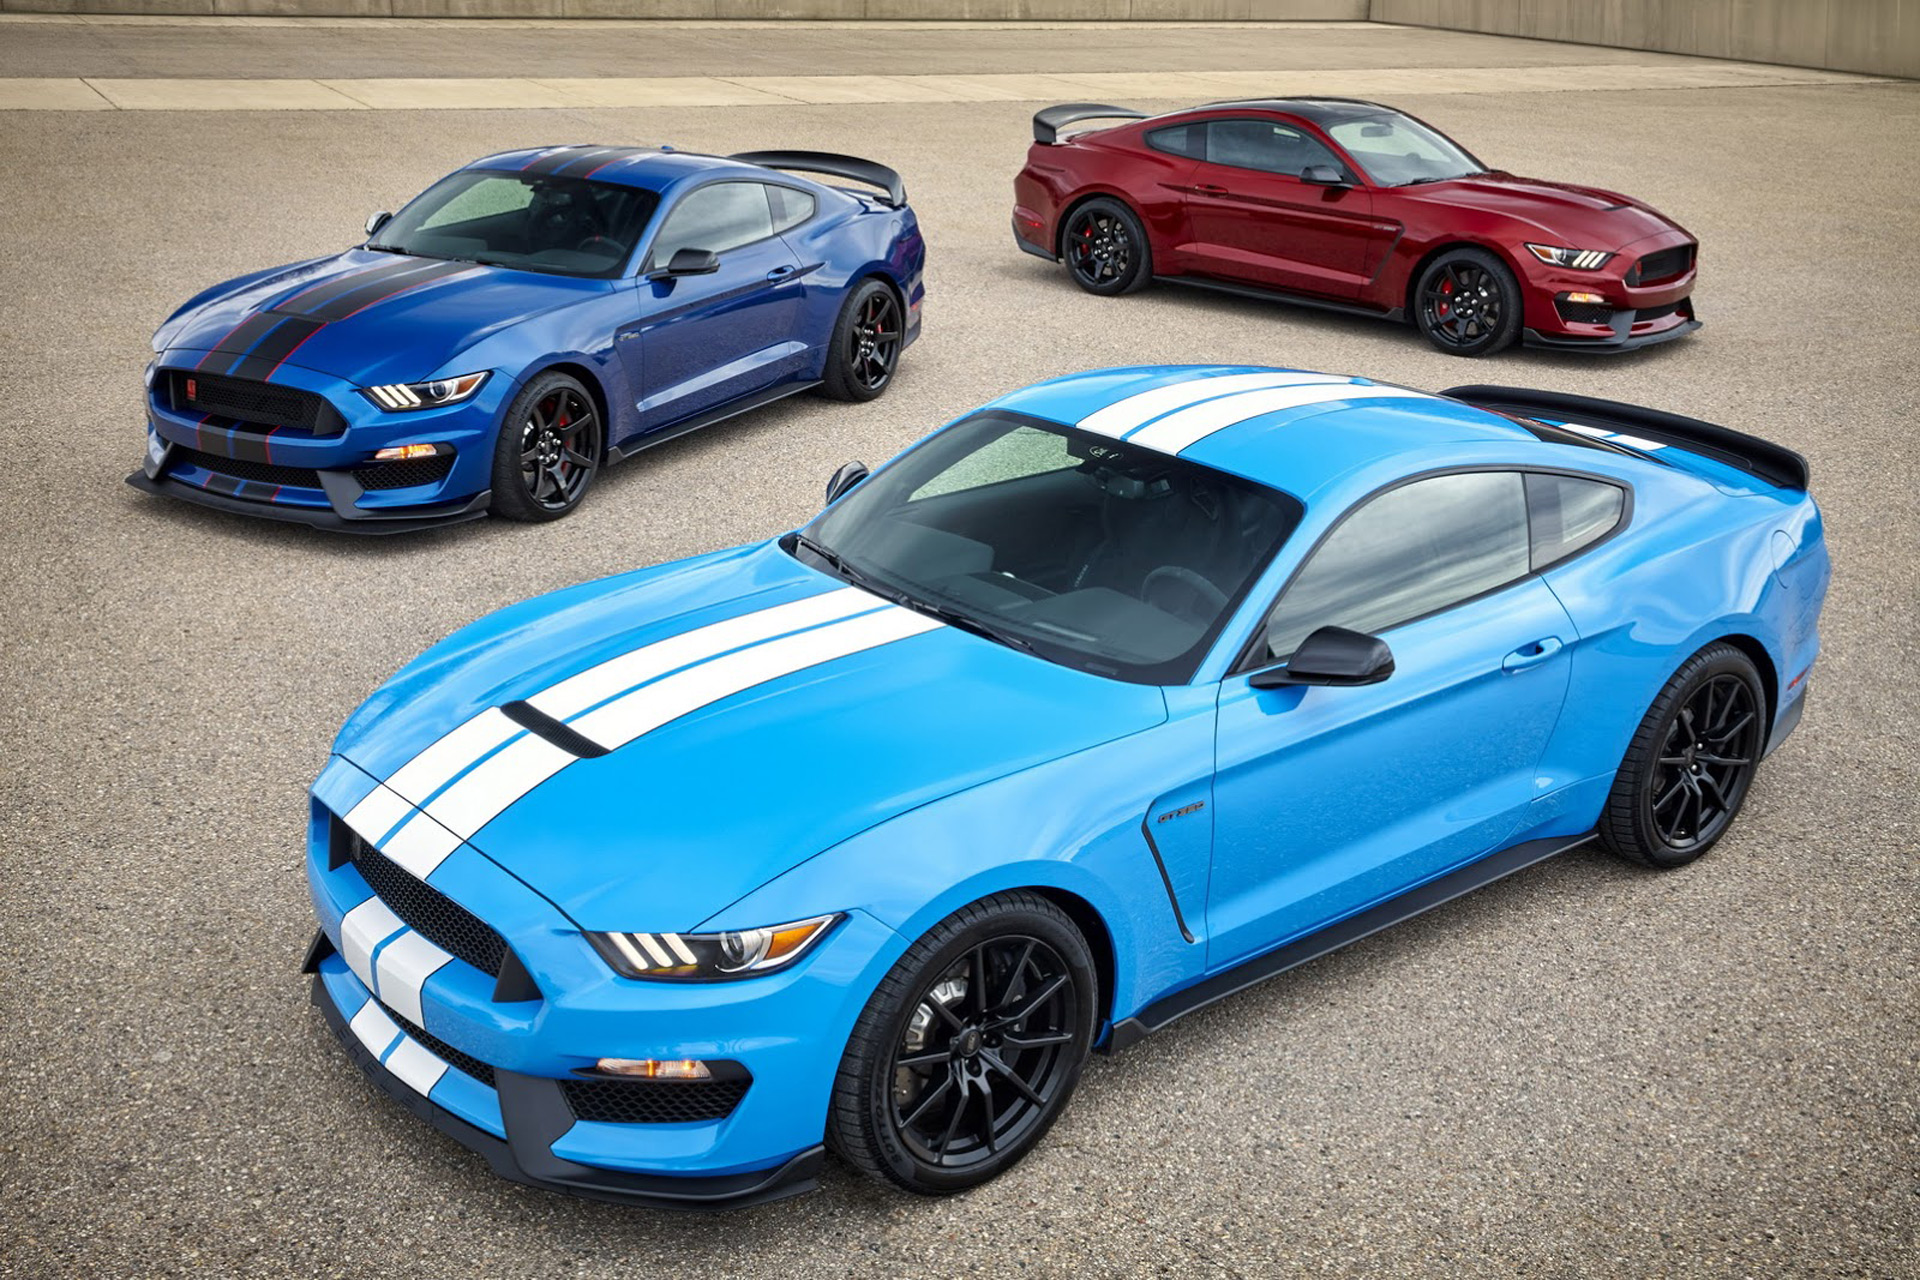 Ford Escape Mercury Mariner Shelby GT350 R Mustang recalled for